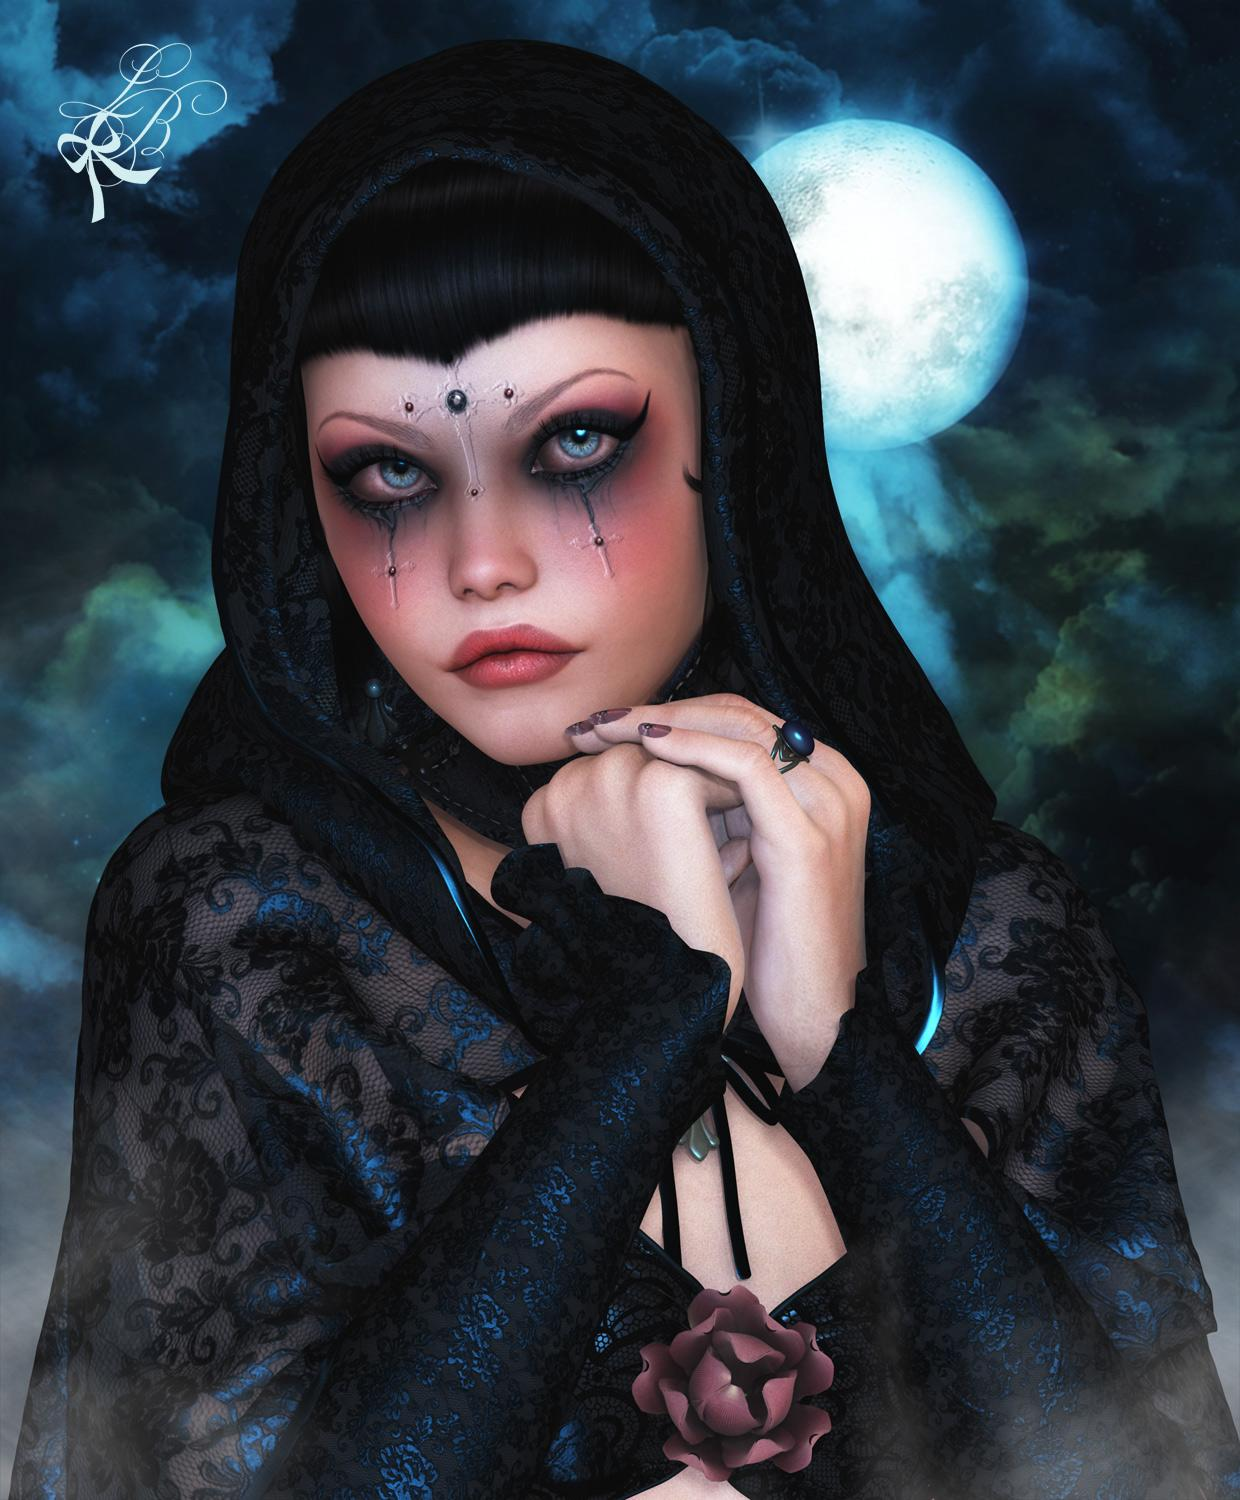 The mourning widow